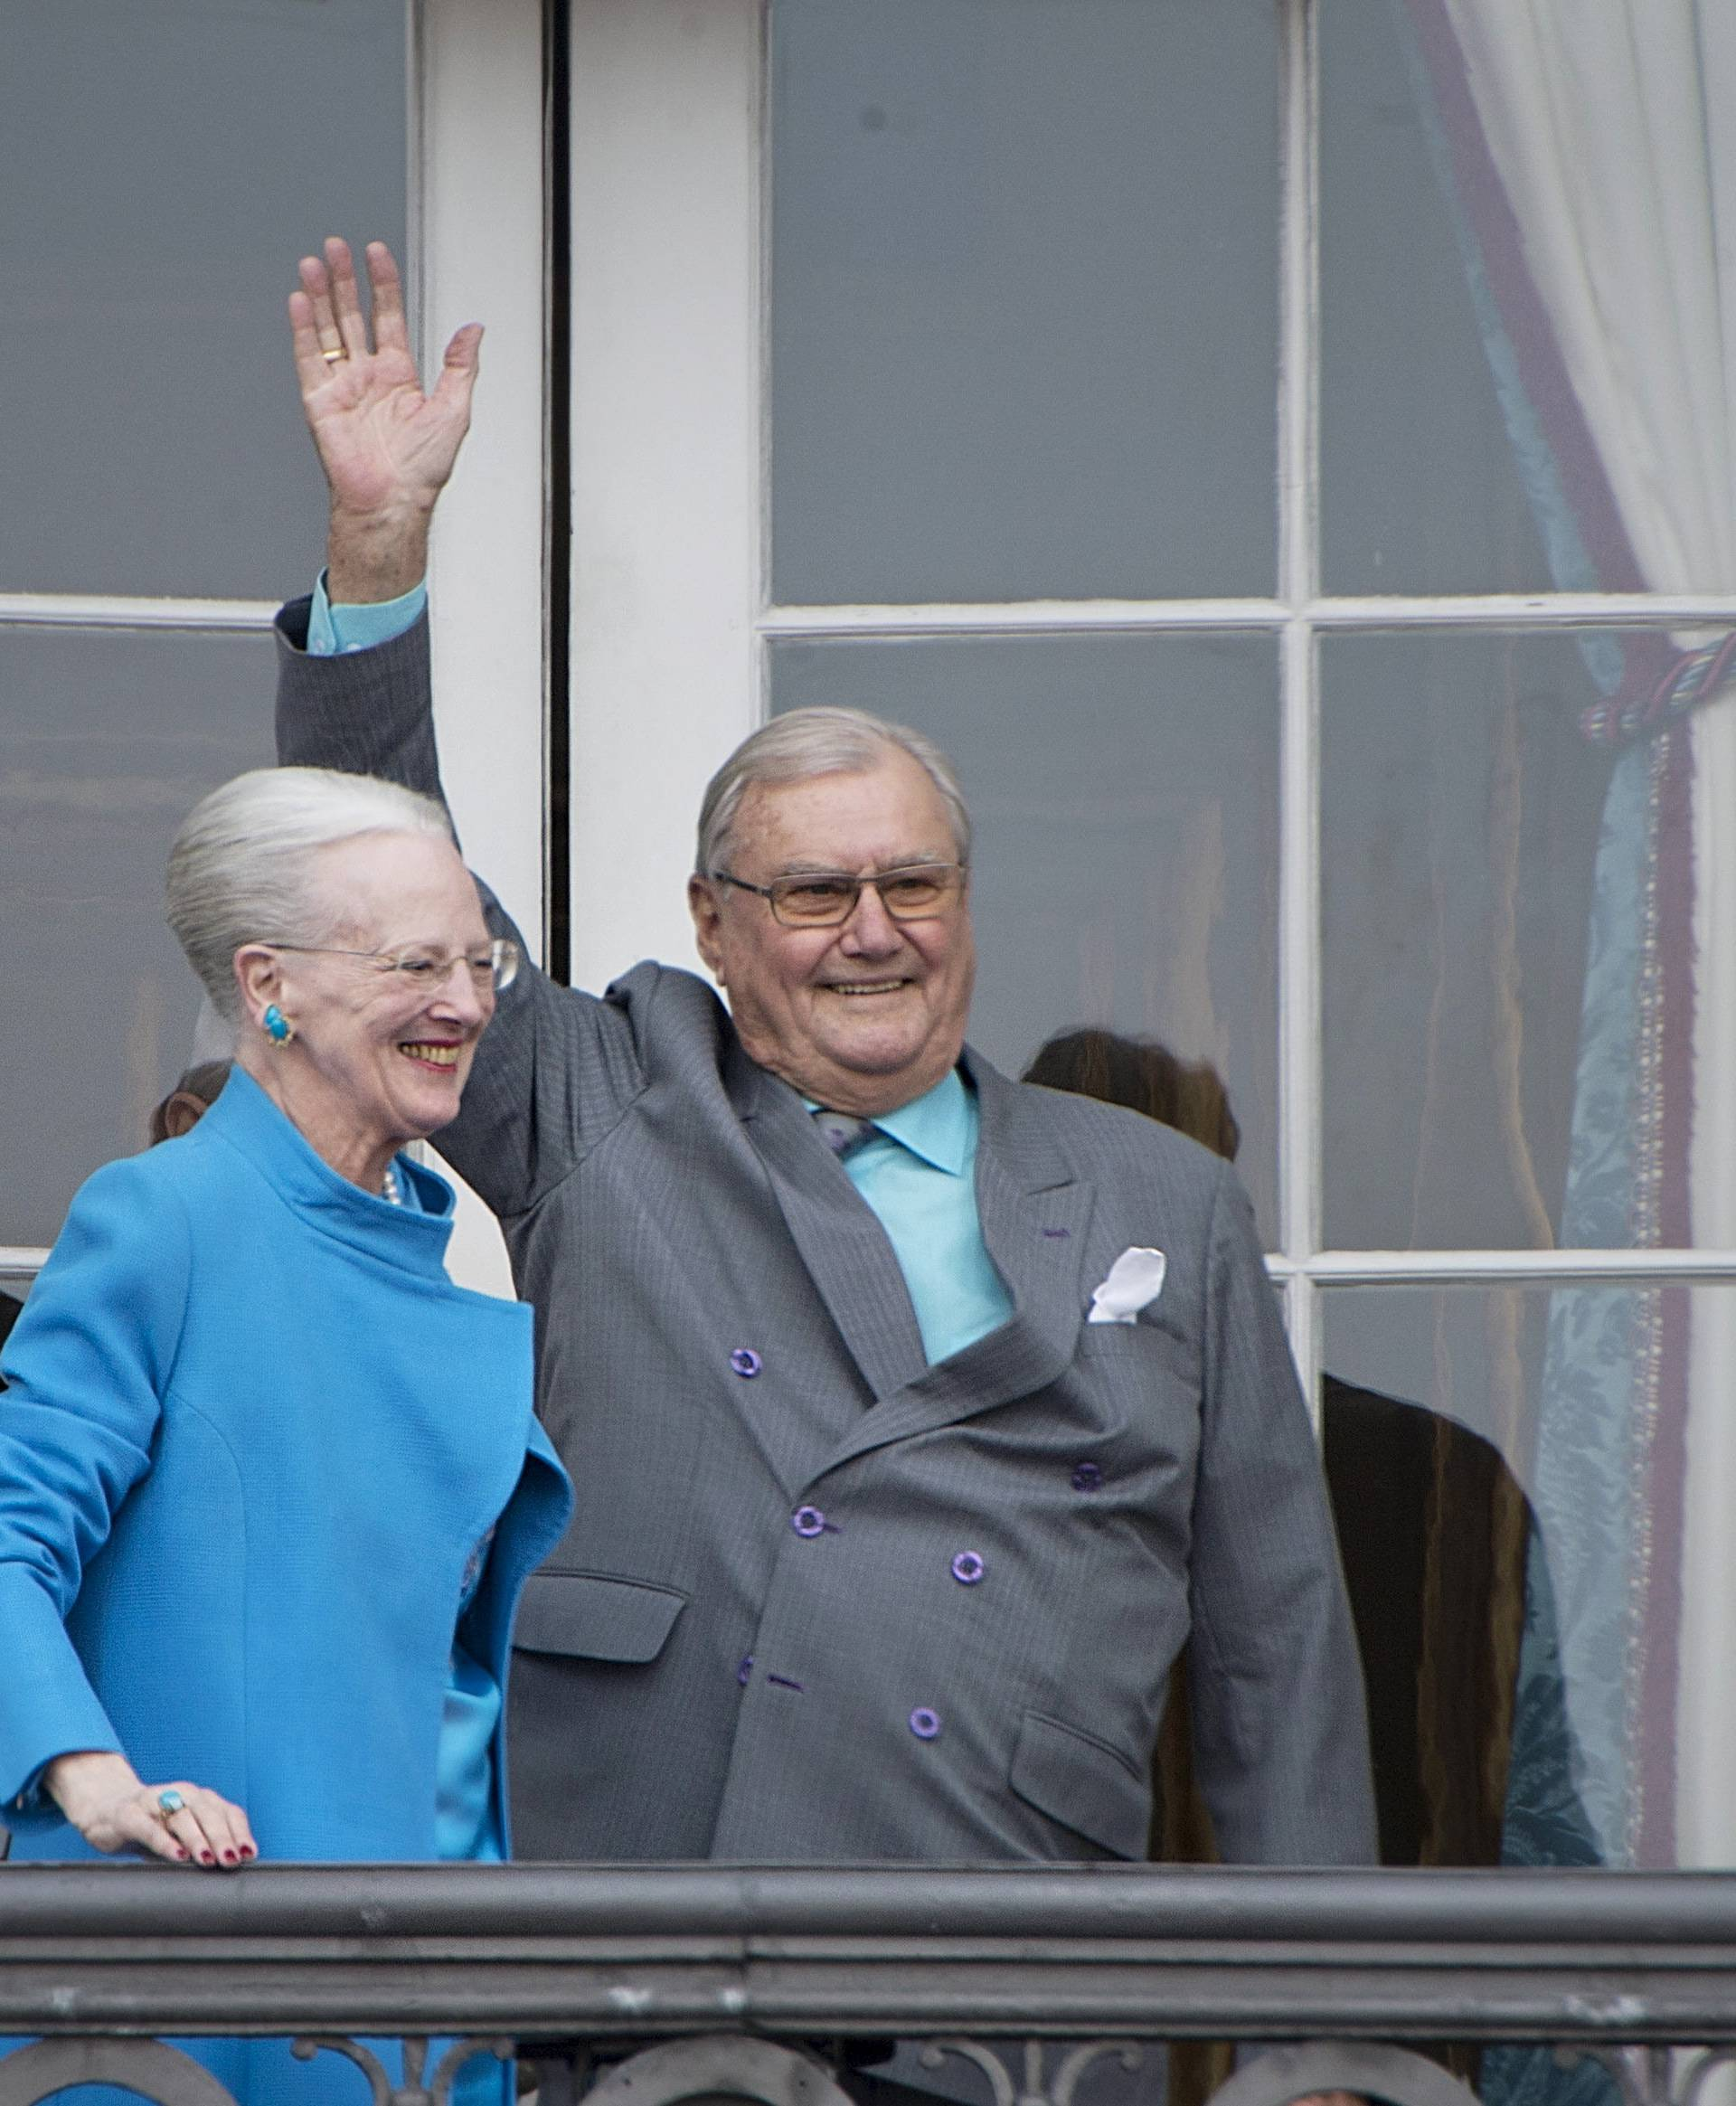 FILE PHOTO: Denmark's Queen Margrethe and Prince Henrik wave from the balcony during Queen Margrethe's 76th birthday celebration at Amalienborg Palace in Copenhagen